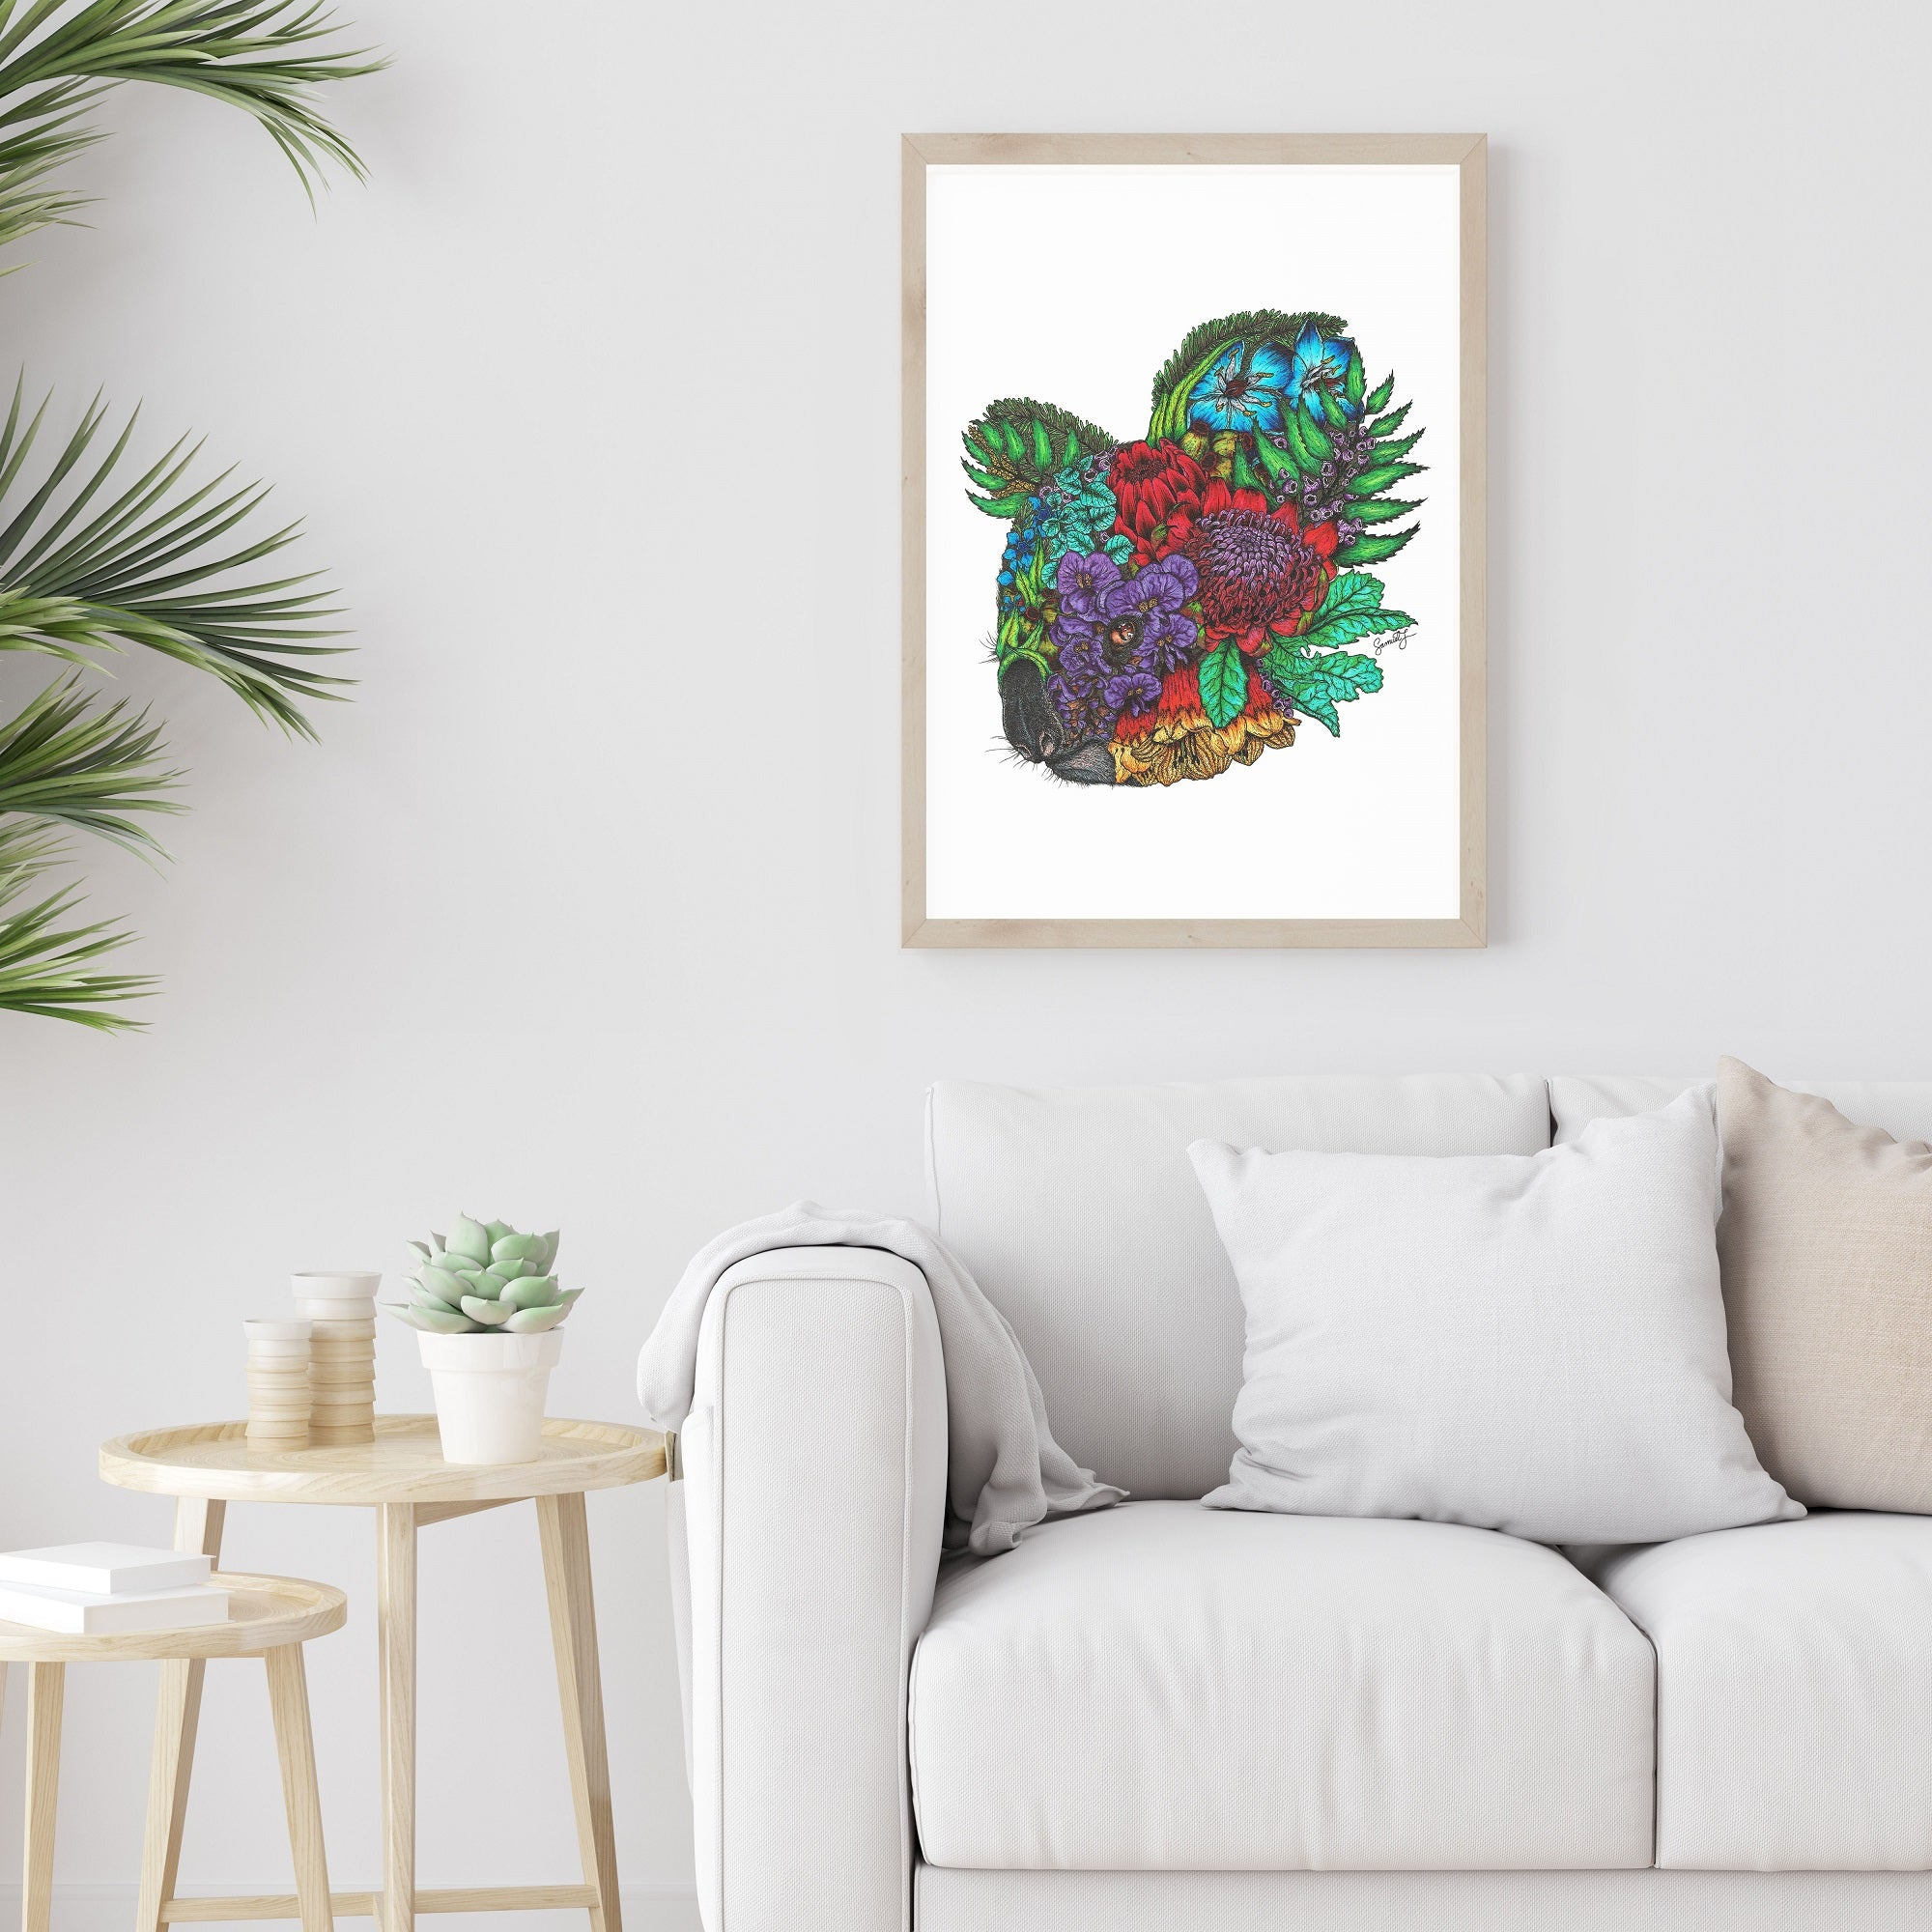 Floral Koala 2 - Colour - White Background - Print SALE